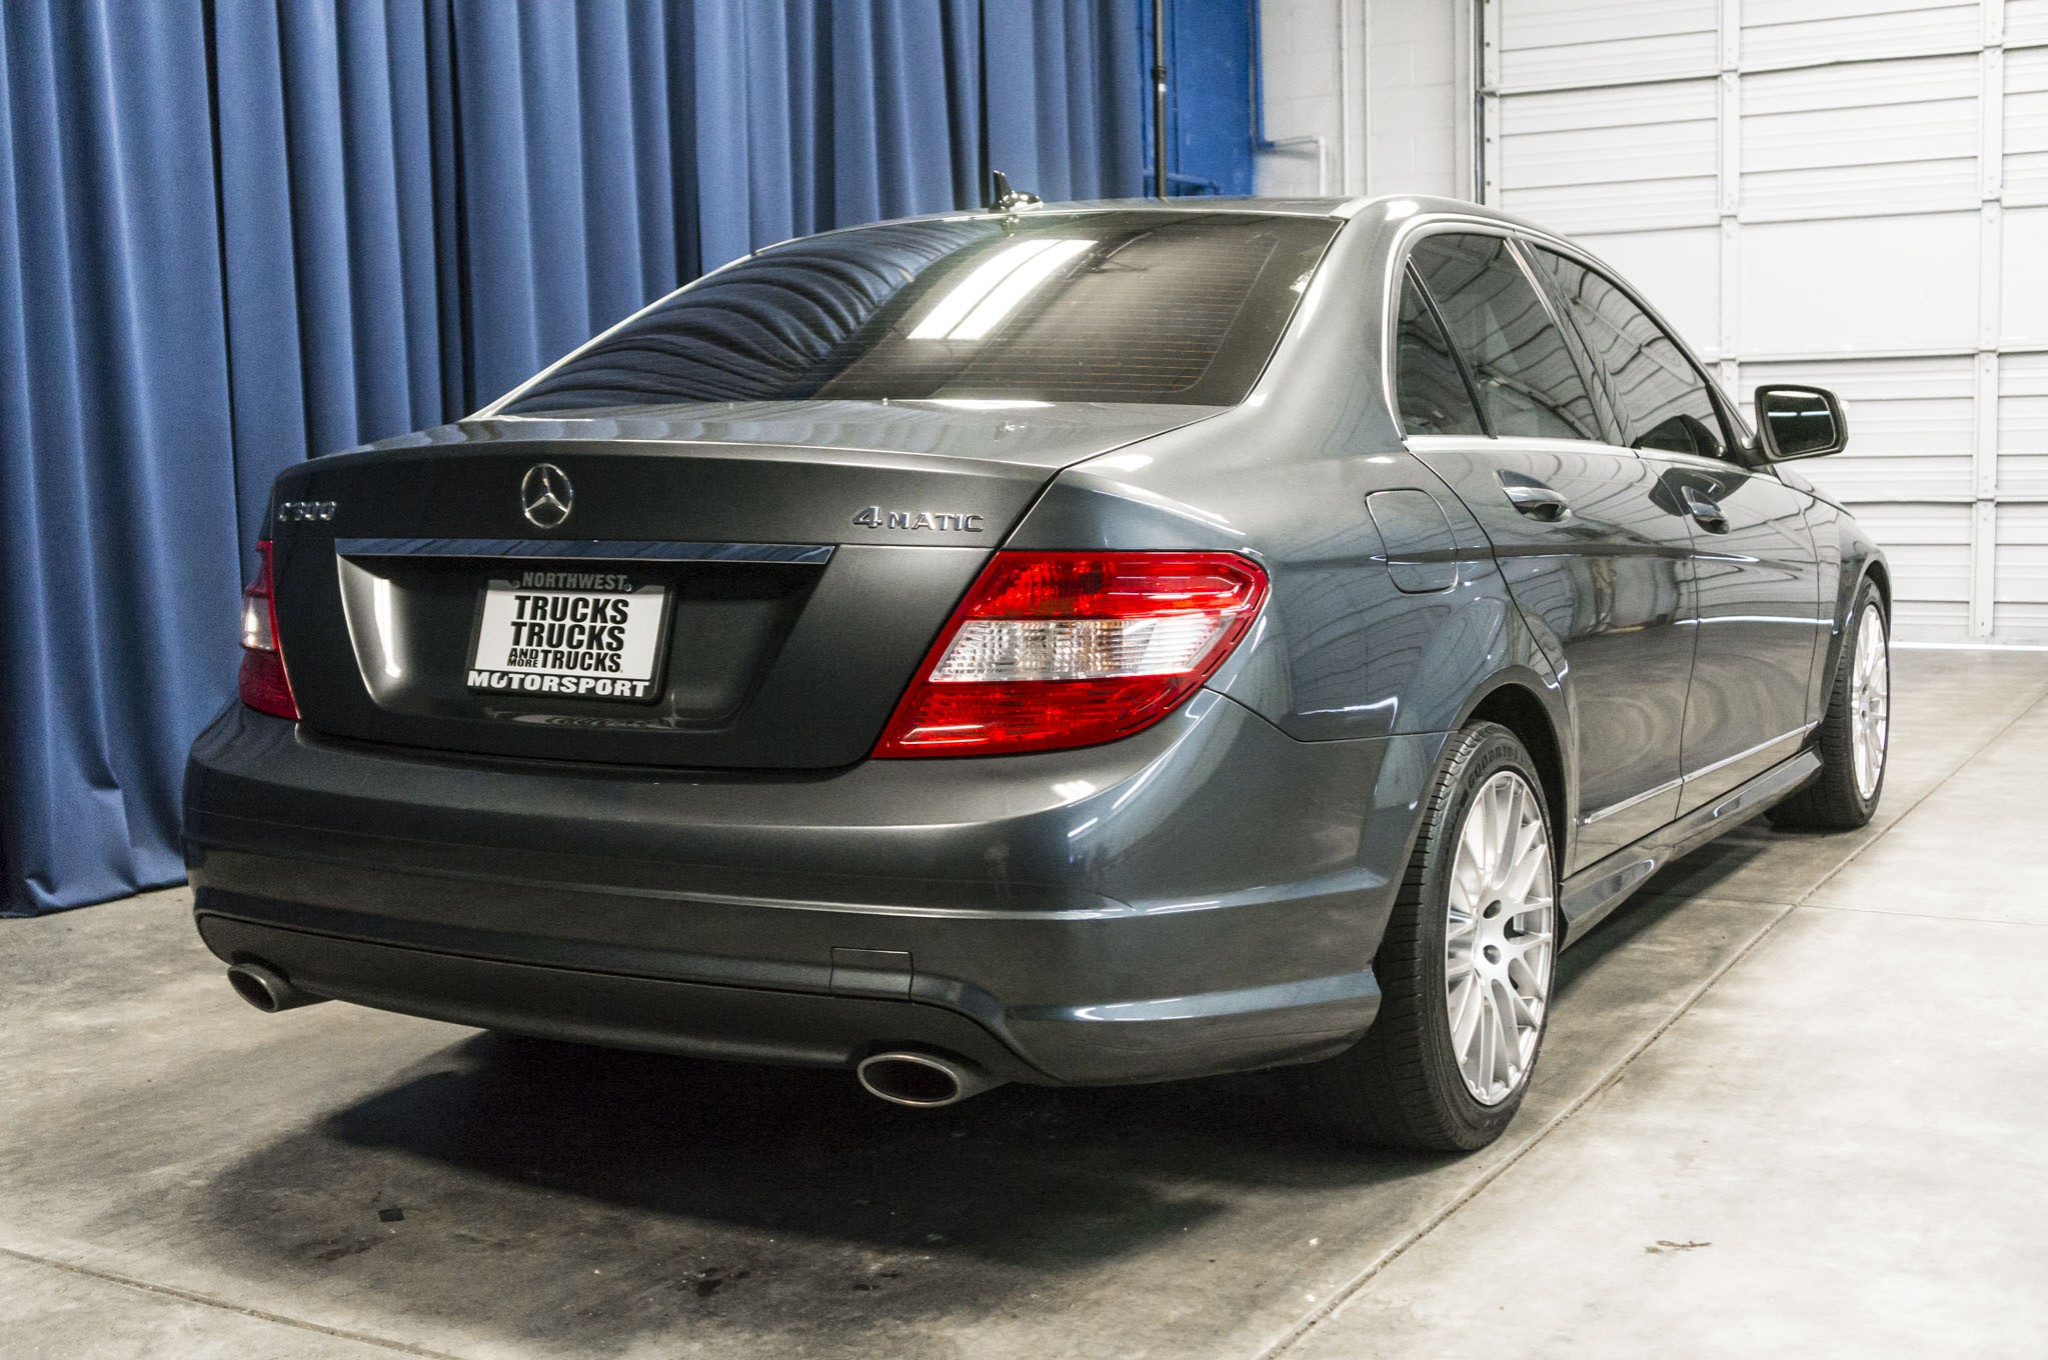 mercedes zachary class large on luxury c benz s sedan blevins wheelwell